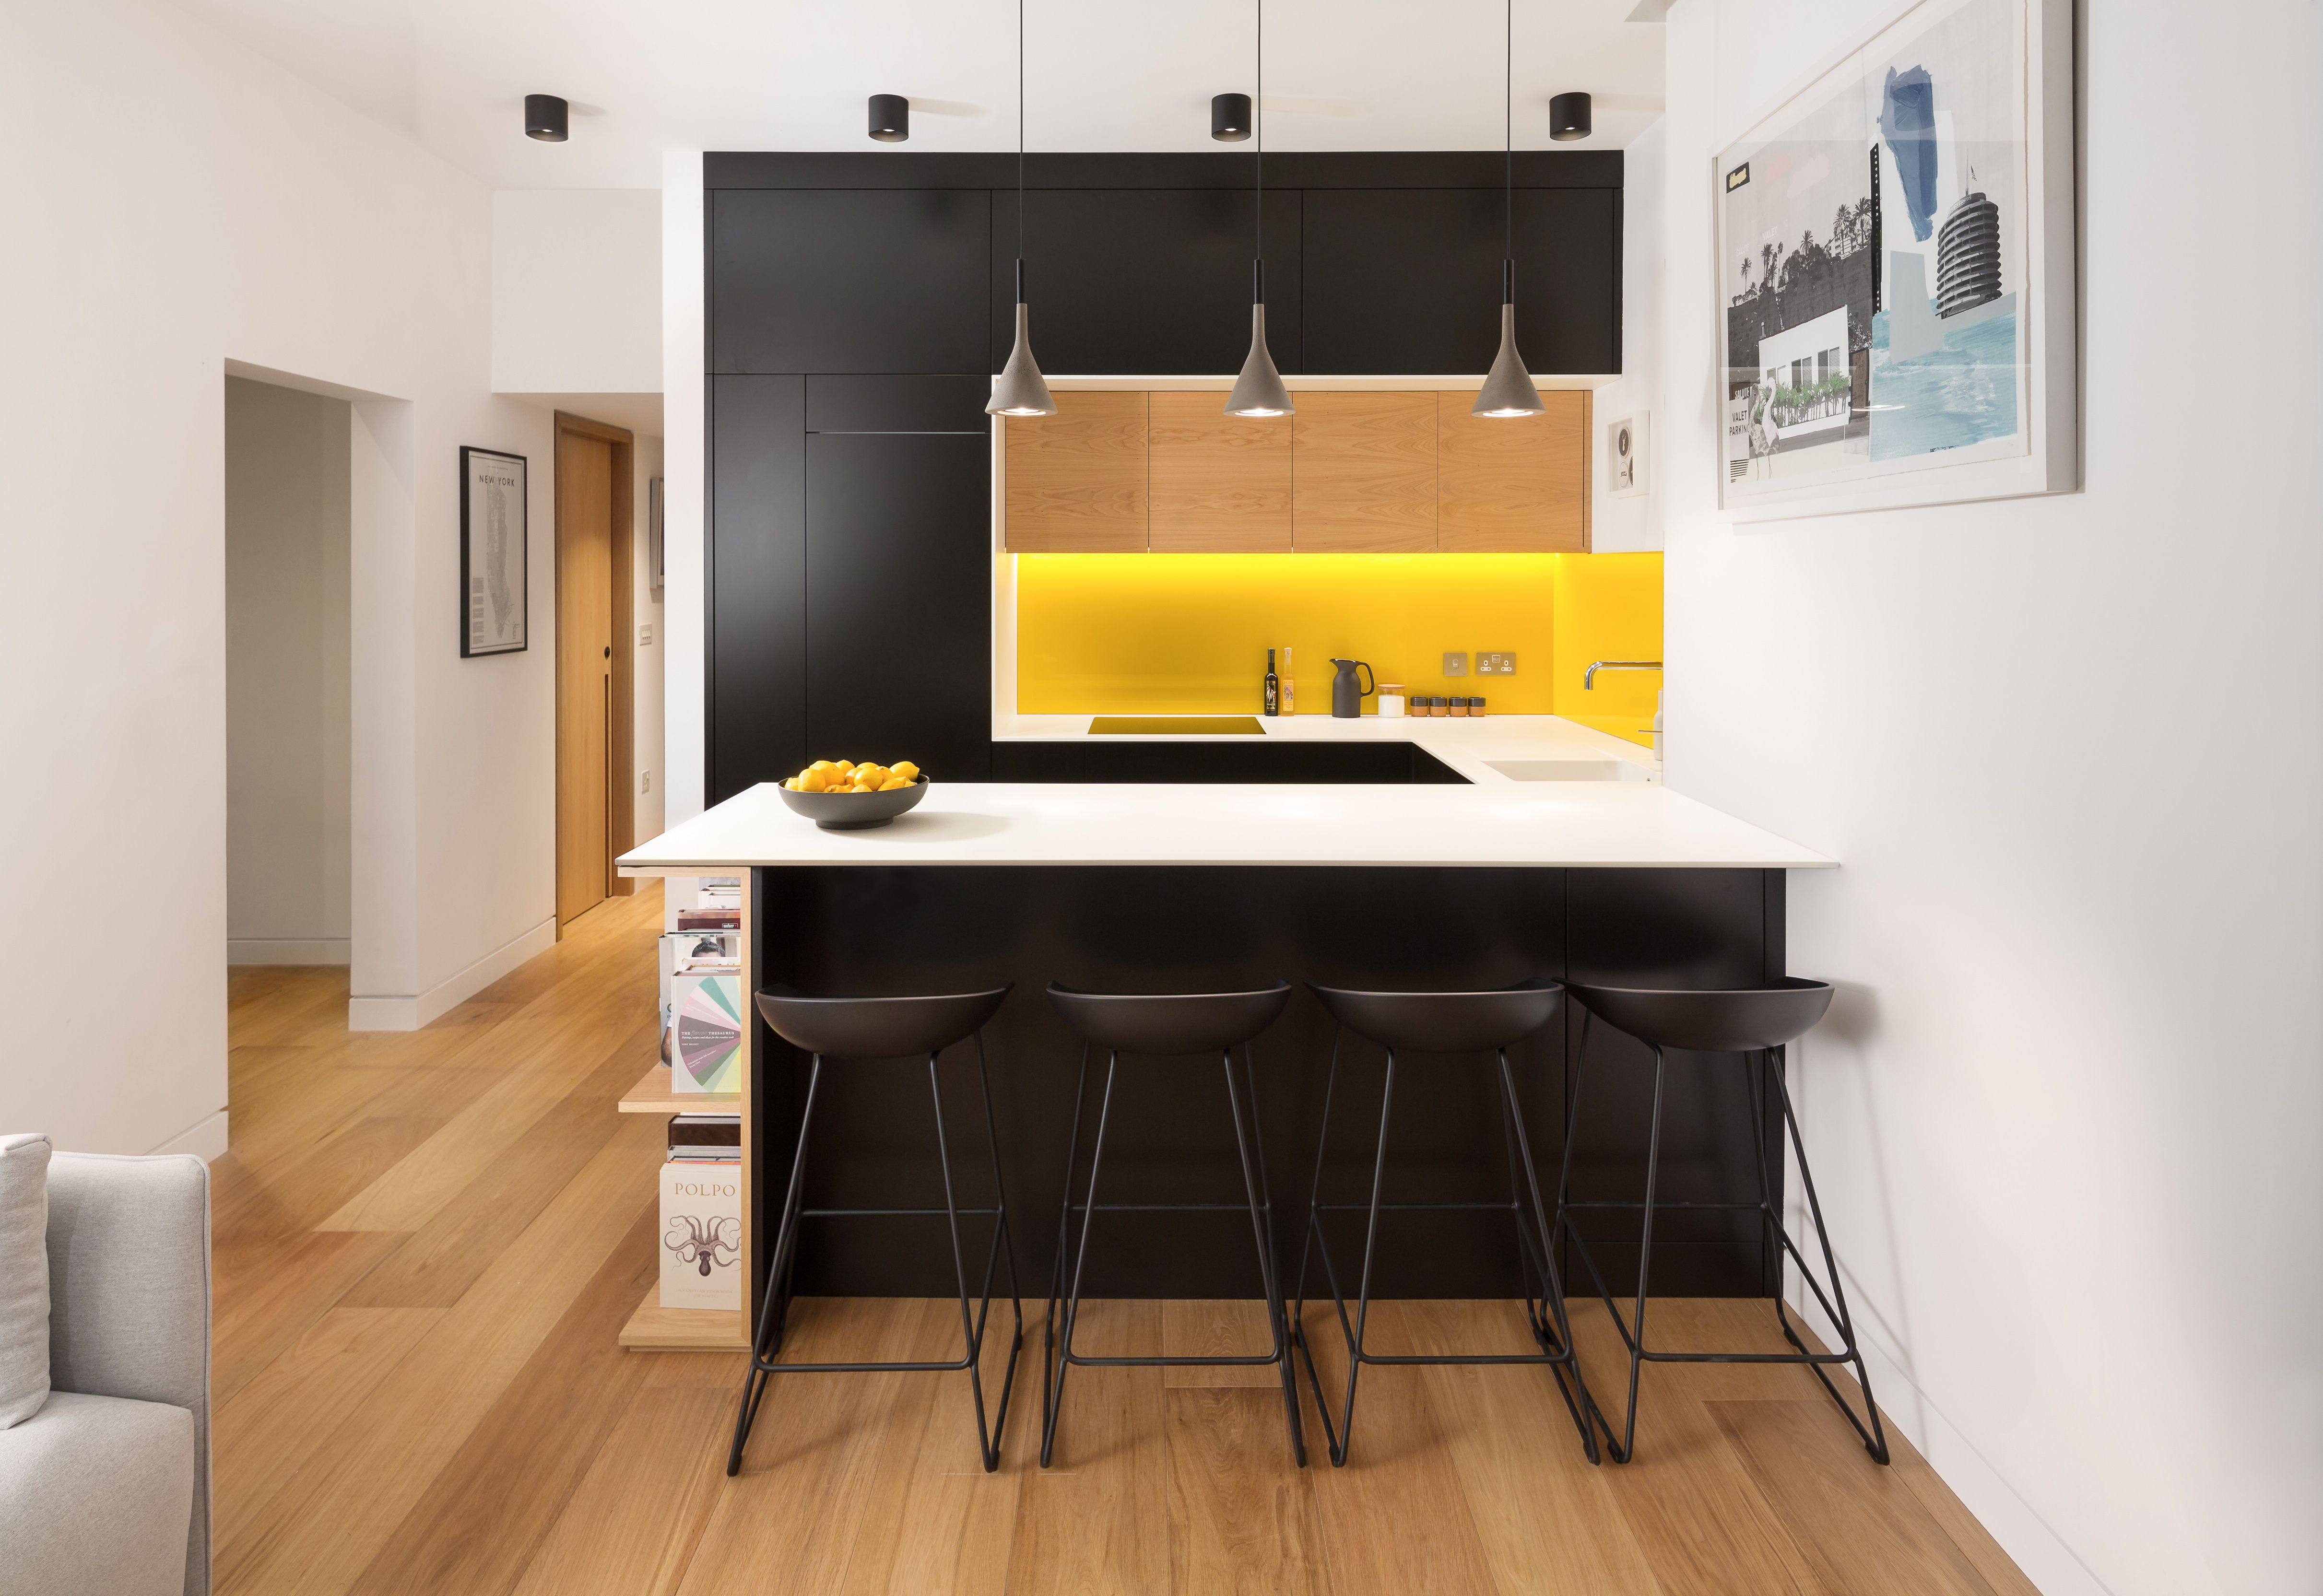 Project The Lemon Tree Kitchen Joinery By Shape London Location London Uk Kitchen Design Small Kitchen Contemporary Kitchen